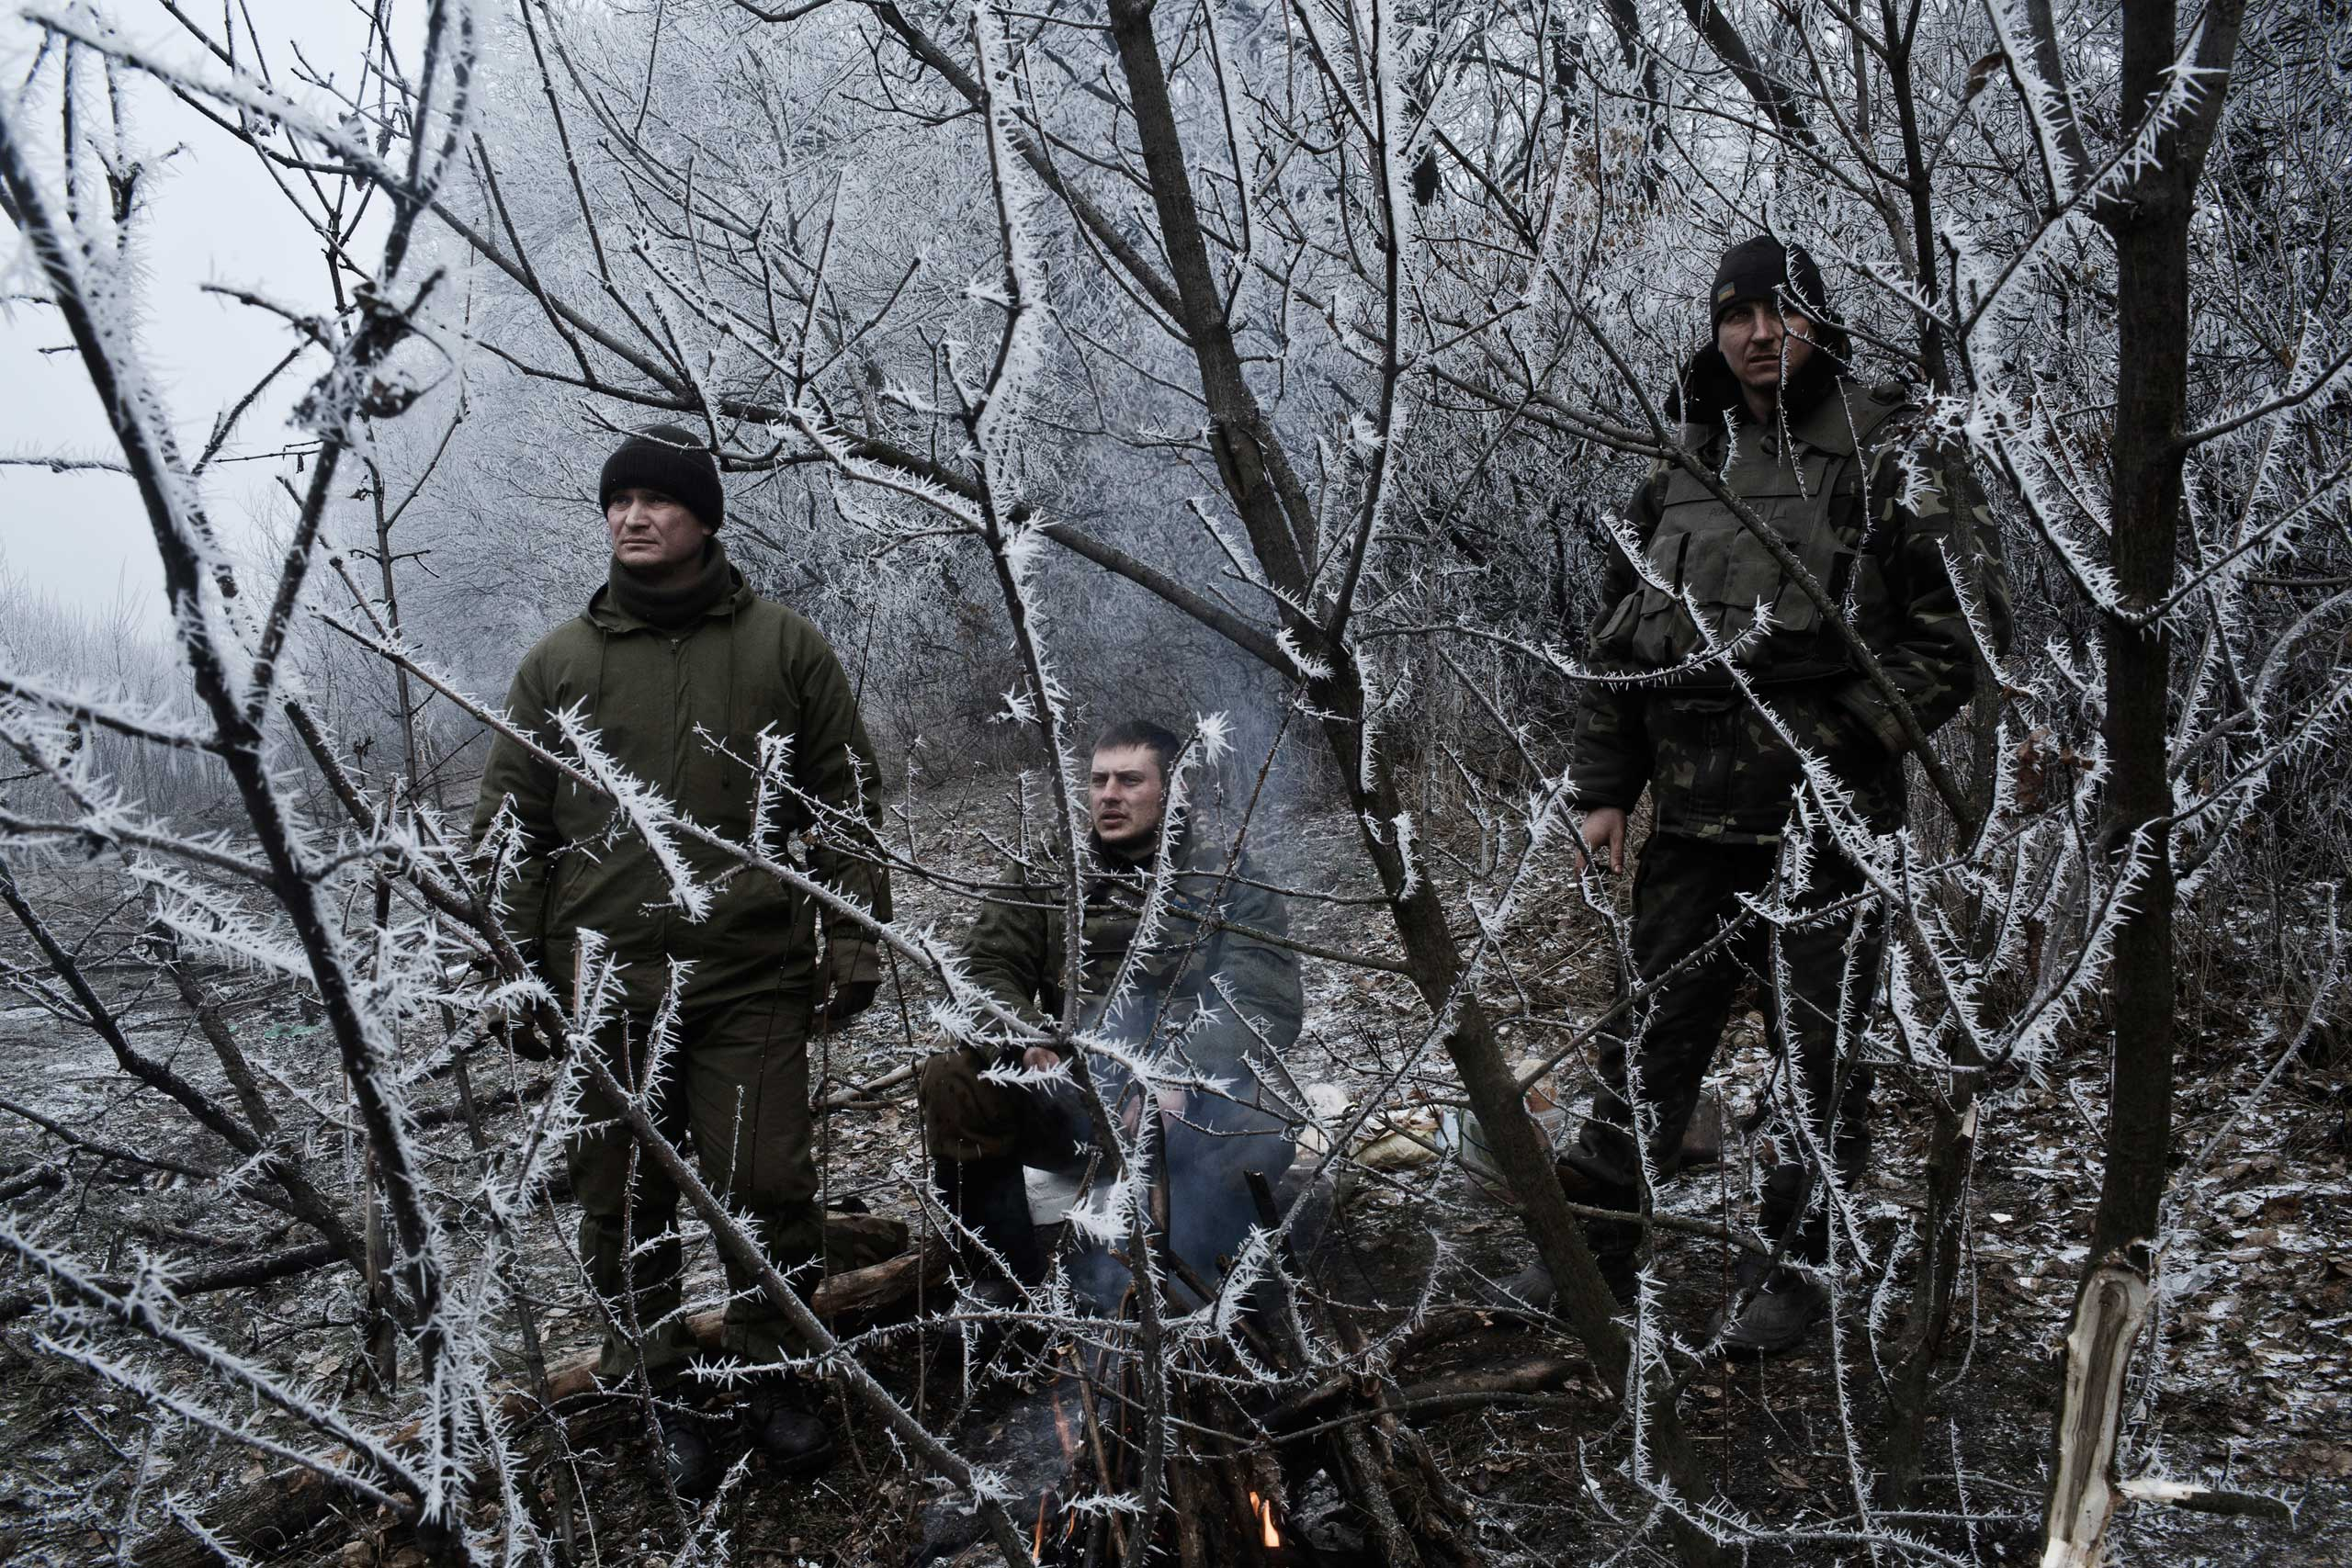 Ross McDonnell:                                 Debaltsevo, in Eastern Ukraine, had been encircled by Pro-Russian forces that had mounted a massive offensive to take the strategic town. Rumors swirled that up to 6,000 Ukrainian forces were trapped inside. The battle, nearing its end, had raged for weeks.                                                               We covered the situation as best we could from the closest town on the Ukrainian side, Artemivsk, convoying up and down the dangerous road between the cities, passing the carcasses of destroyed vehicles, gleaning information and photos from the muddied troops as they retreated, or awaited orders, warming themselves by small fires.                                                              That morning, it seemed as though the fight for Debaltsevo had been lost to the Pro-Russian Separatists. We were on the road early, in the blue half-light. The hoar frost had enveloped the countryside and fog sat low over the road. Between lines of tanks, GRAD rocket launchers and military transports, a group of soldiers played football in the road, their breath catching the frozen air.                                                               It was impossible not to think of World War I in that static, etheral moment. The ice and fog seemed to blanket the landscape and indeed, the emotions of the scene, temporarily delaying the shock of defeat and the reveal of the aftermath.                                                                Three Ukrainian National Guardsmen, off to the side of the road, seemingly reflect this sentiment too, their expressions in the resulting photograph, perhaps silently weighing up the consequences of war.                                                               This photo was taken along a road leading to Debaltseve in Artemivsk, Ukraine on Feb. 15, 2015.